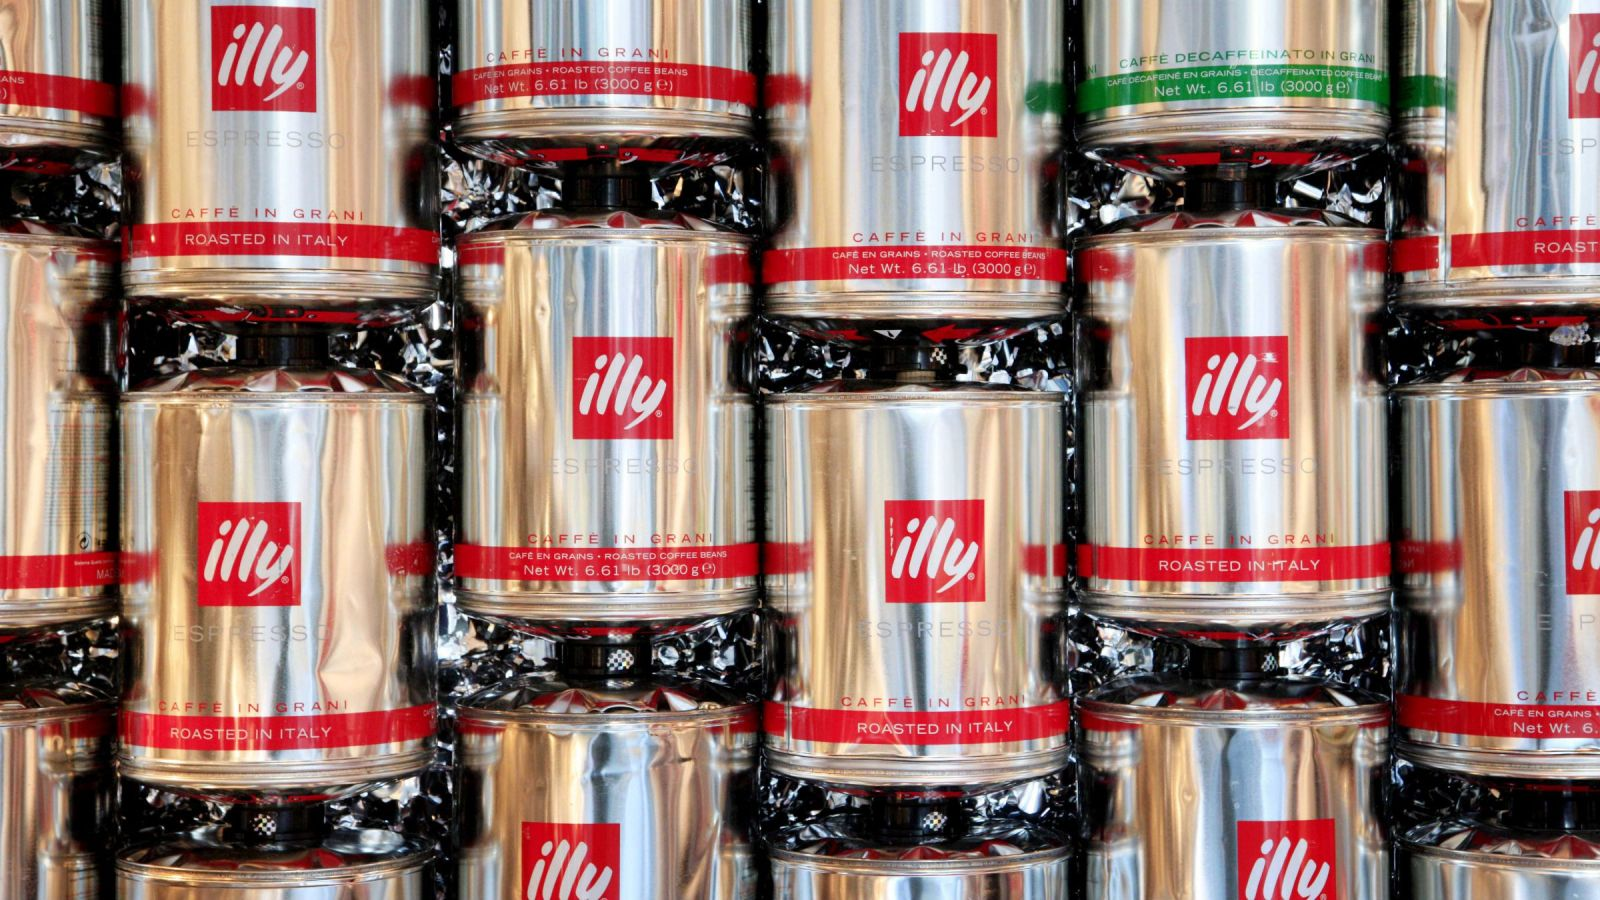 Why Illy will never sell fair trade coffee — Quartz